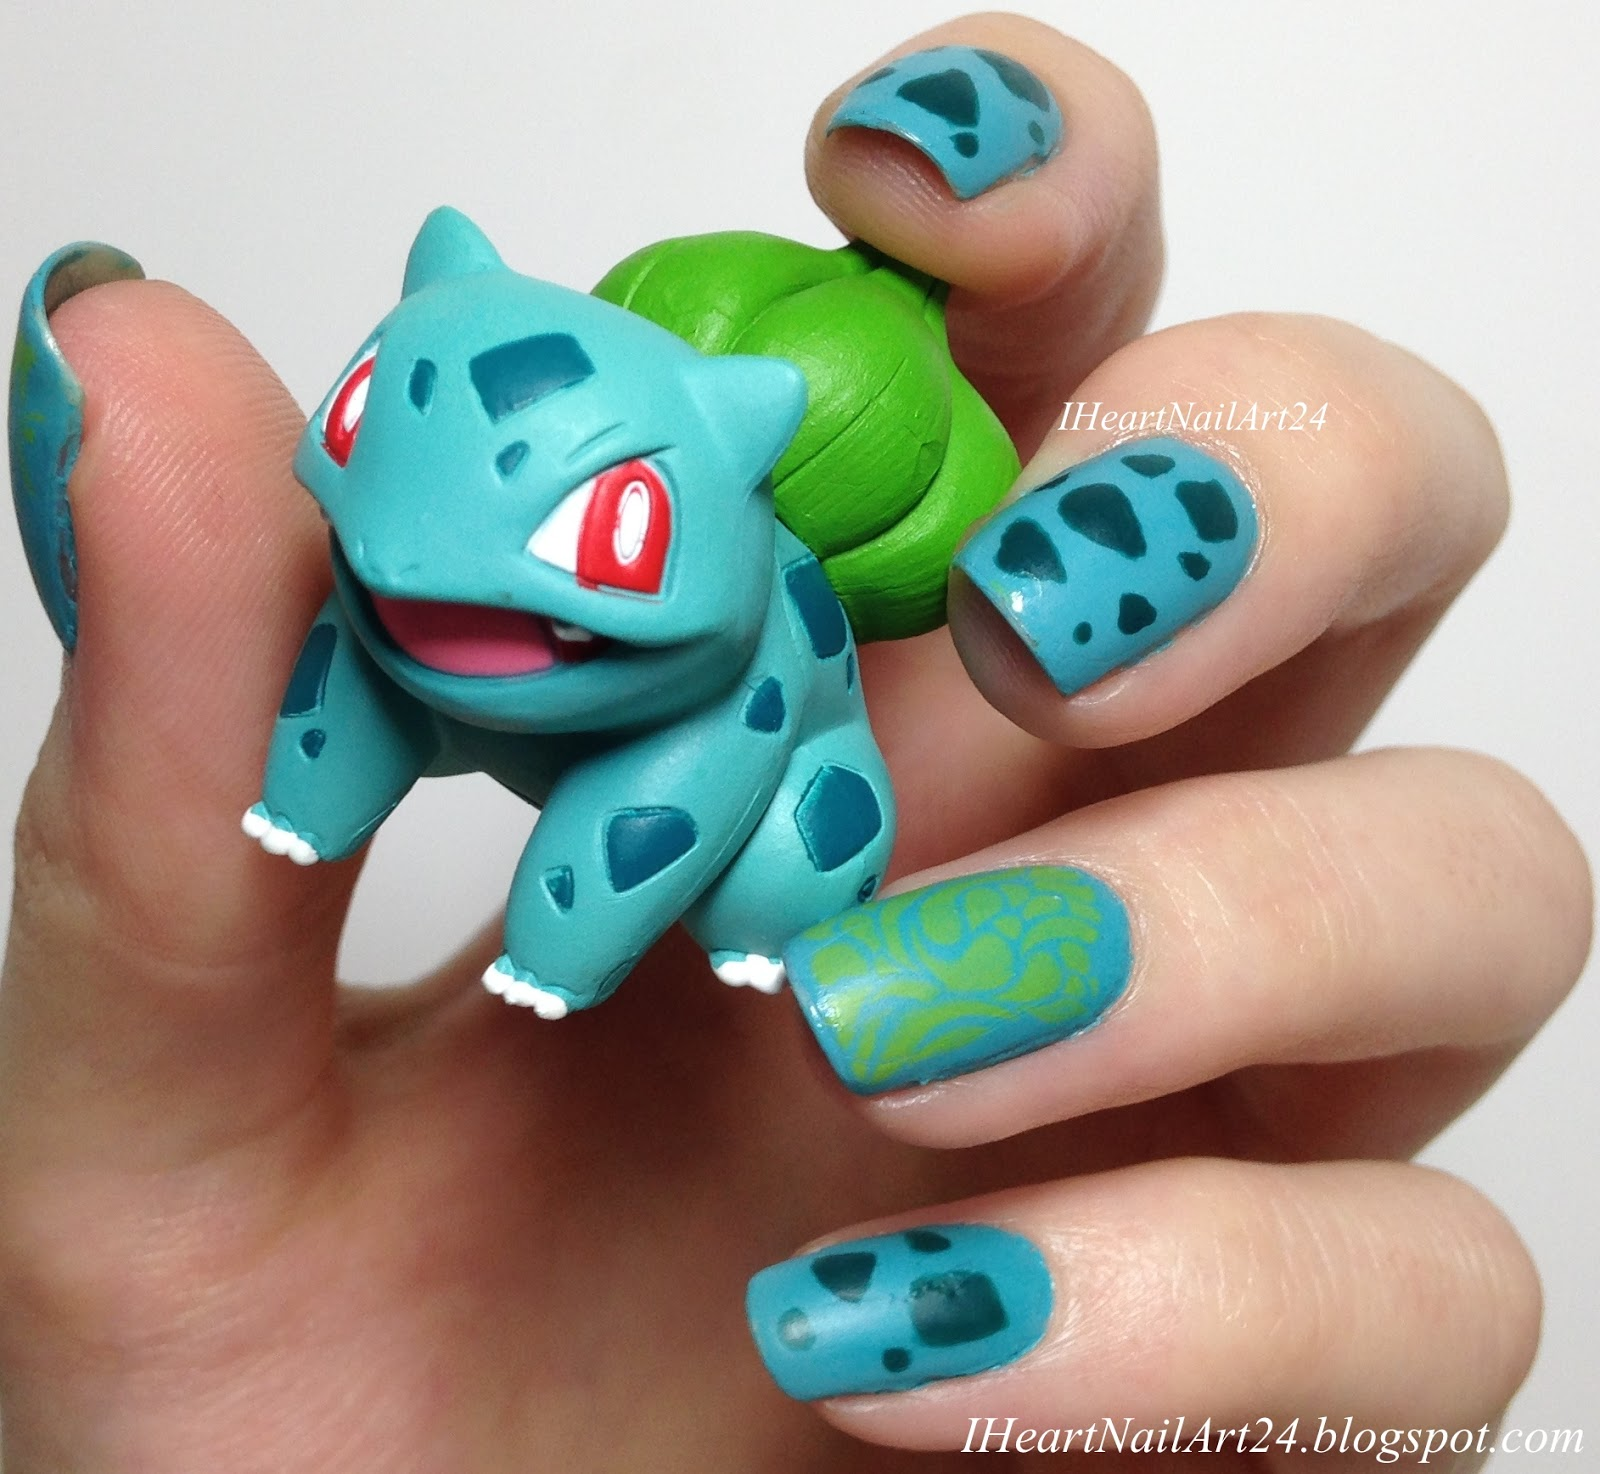 Bulbasaur I Heart Nail Art